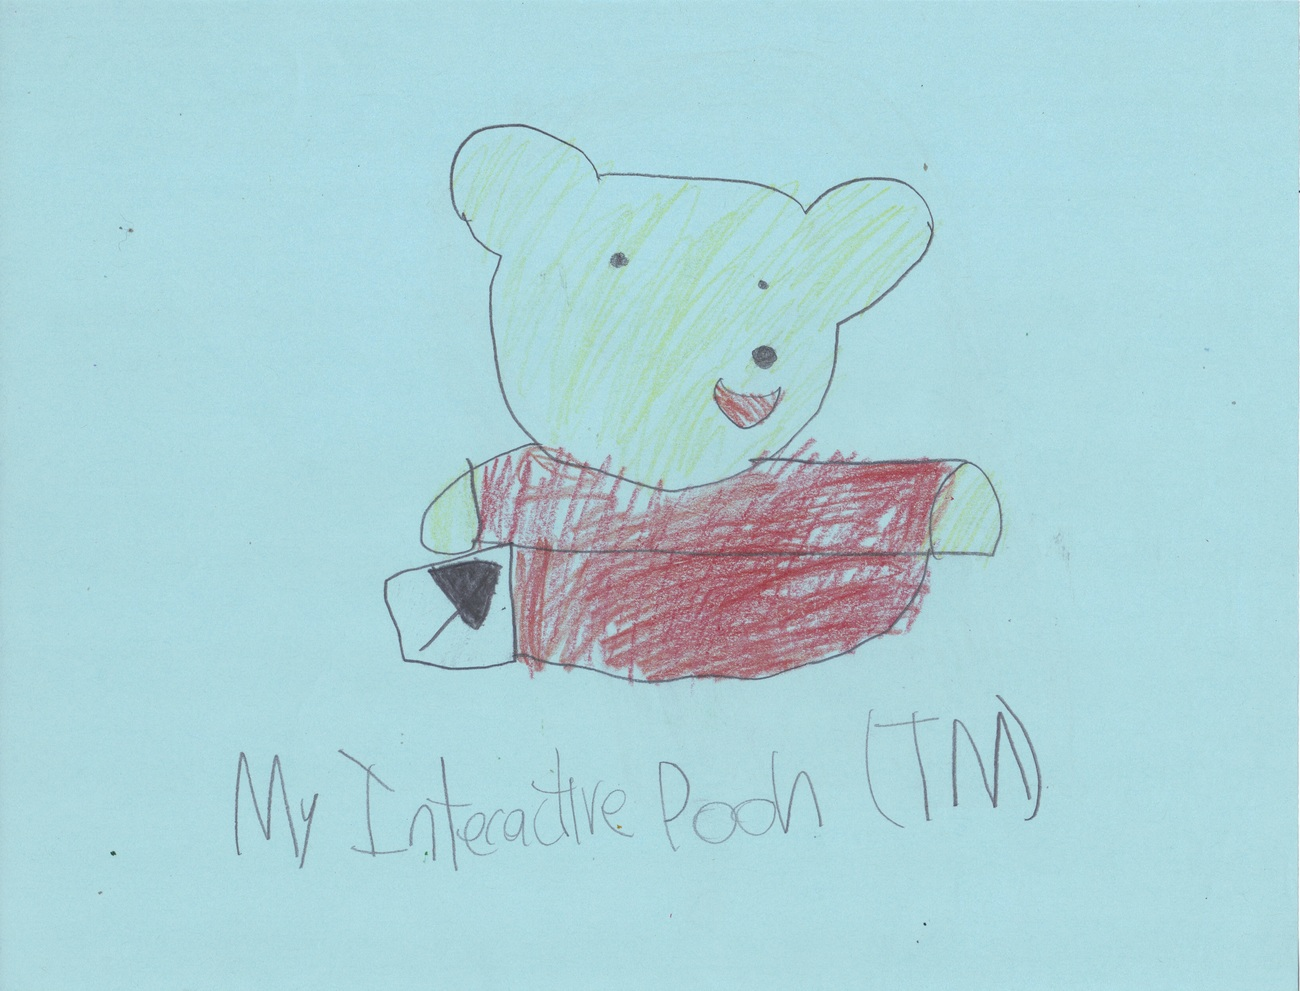 My interactive pooh icon